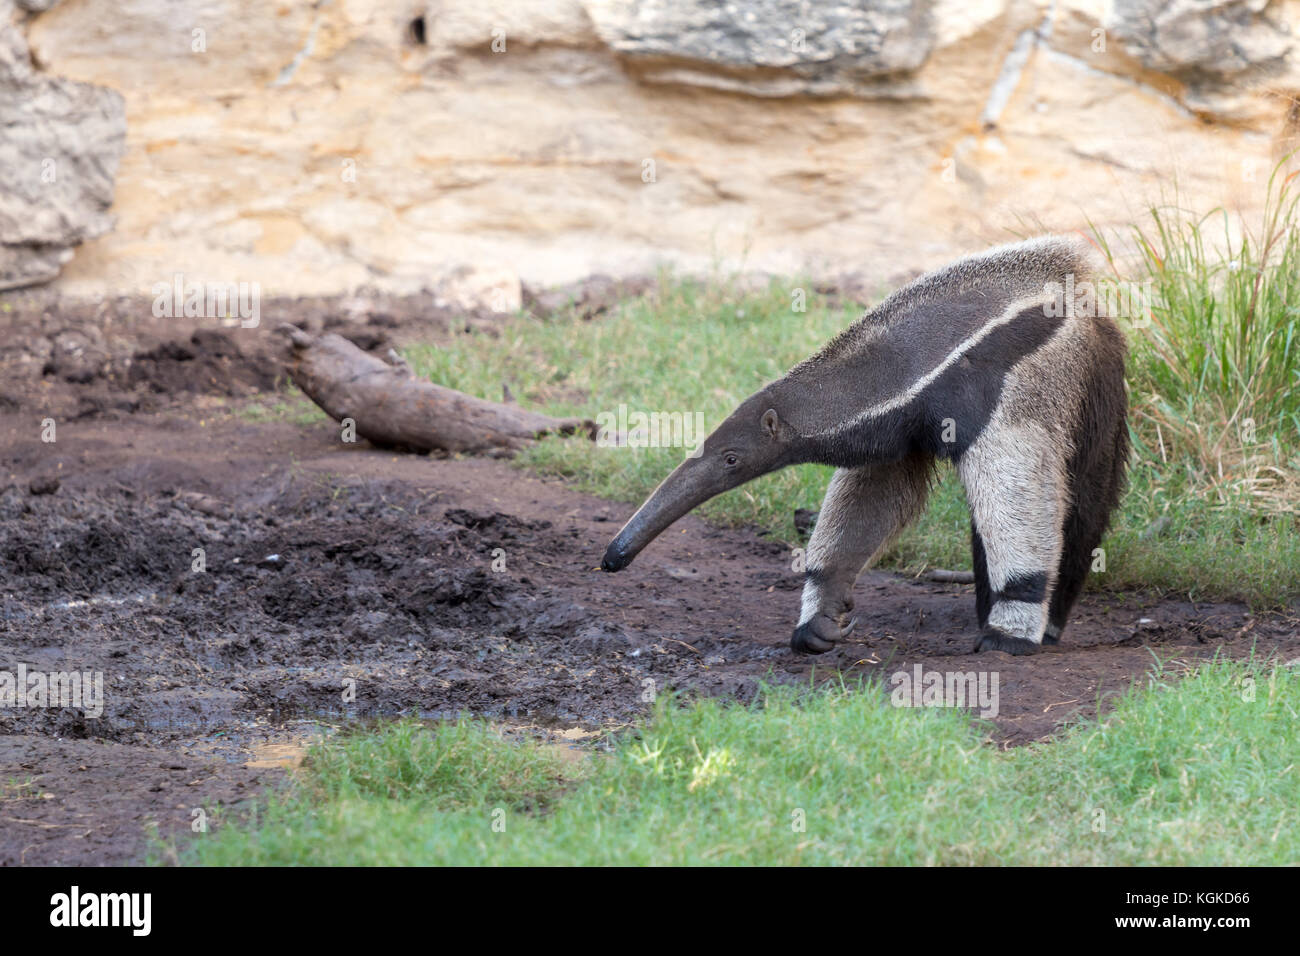 Anteater Looking for Food - Stock Image